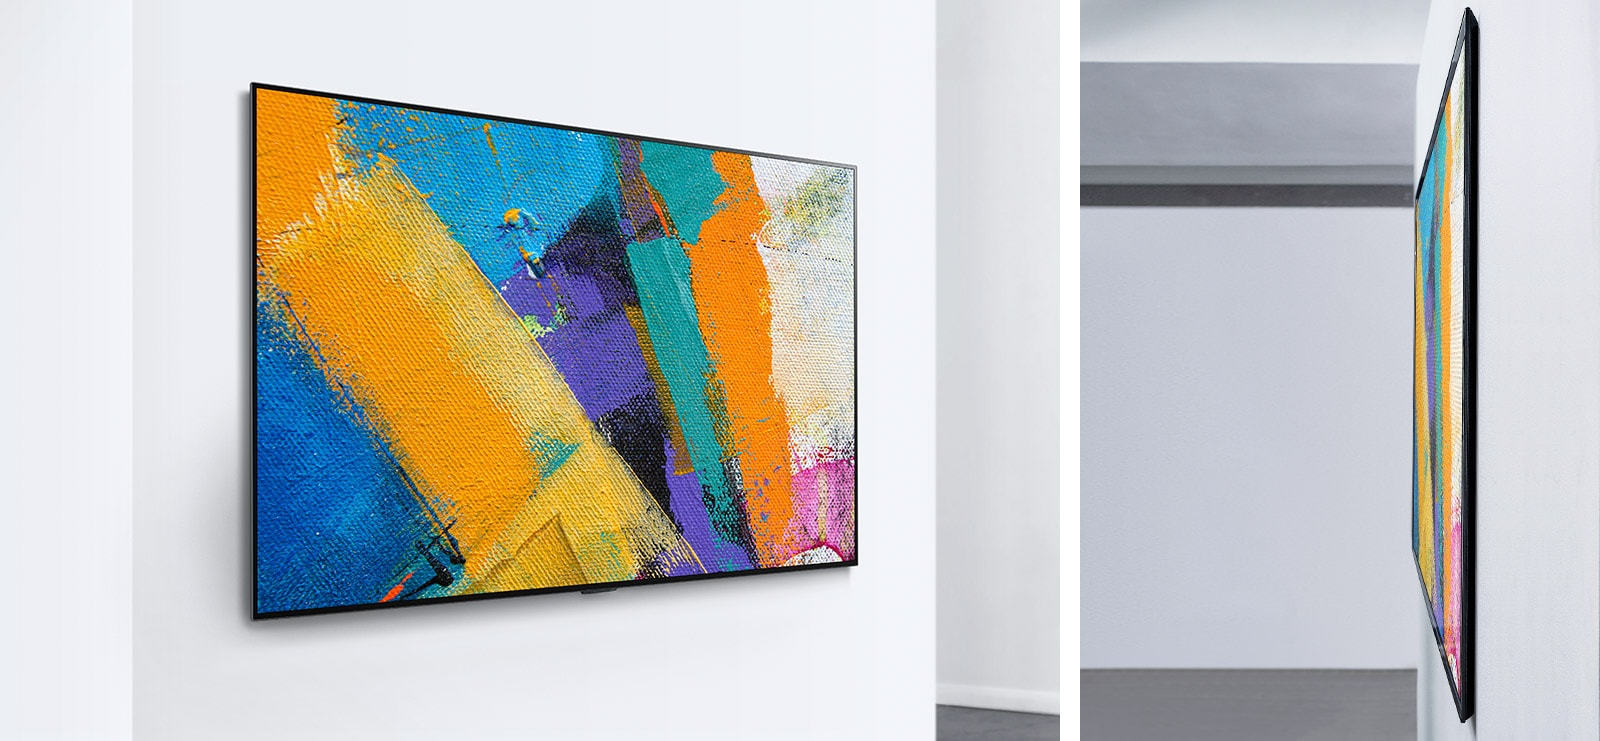 Two LG Gallery Design TVs showing artwork